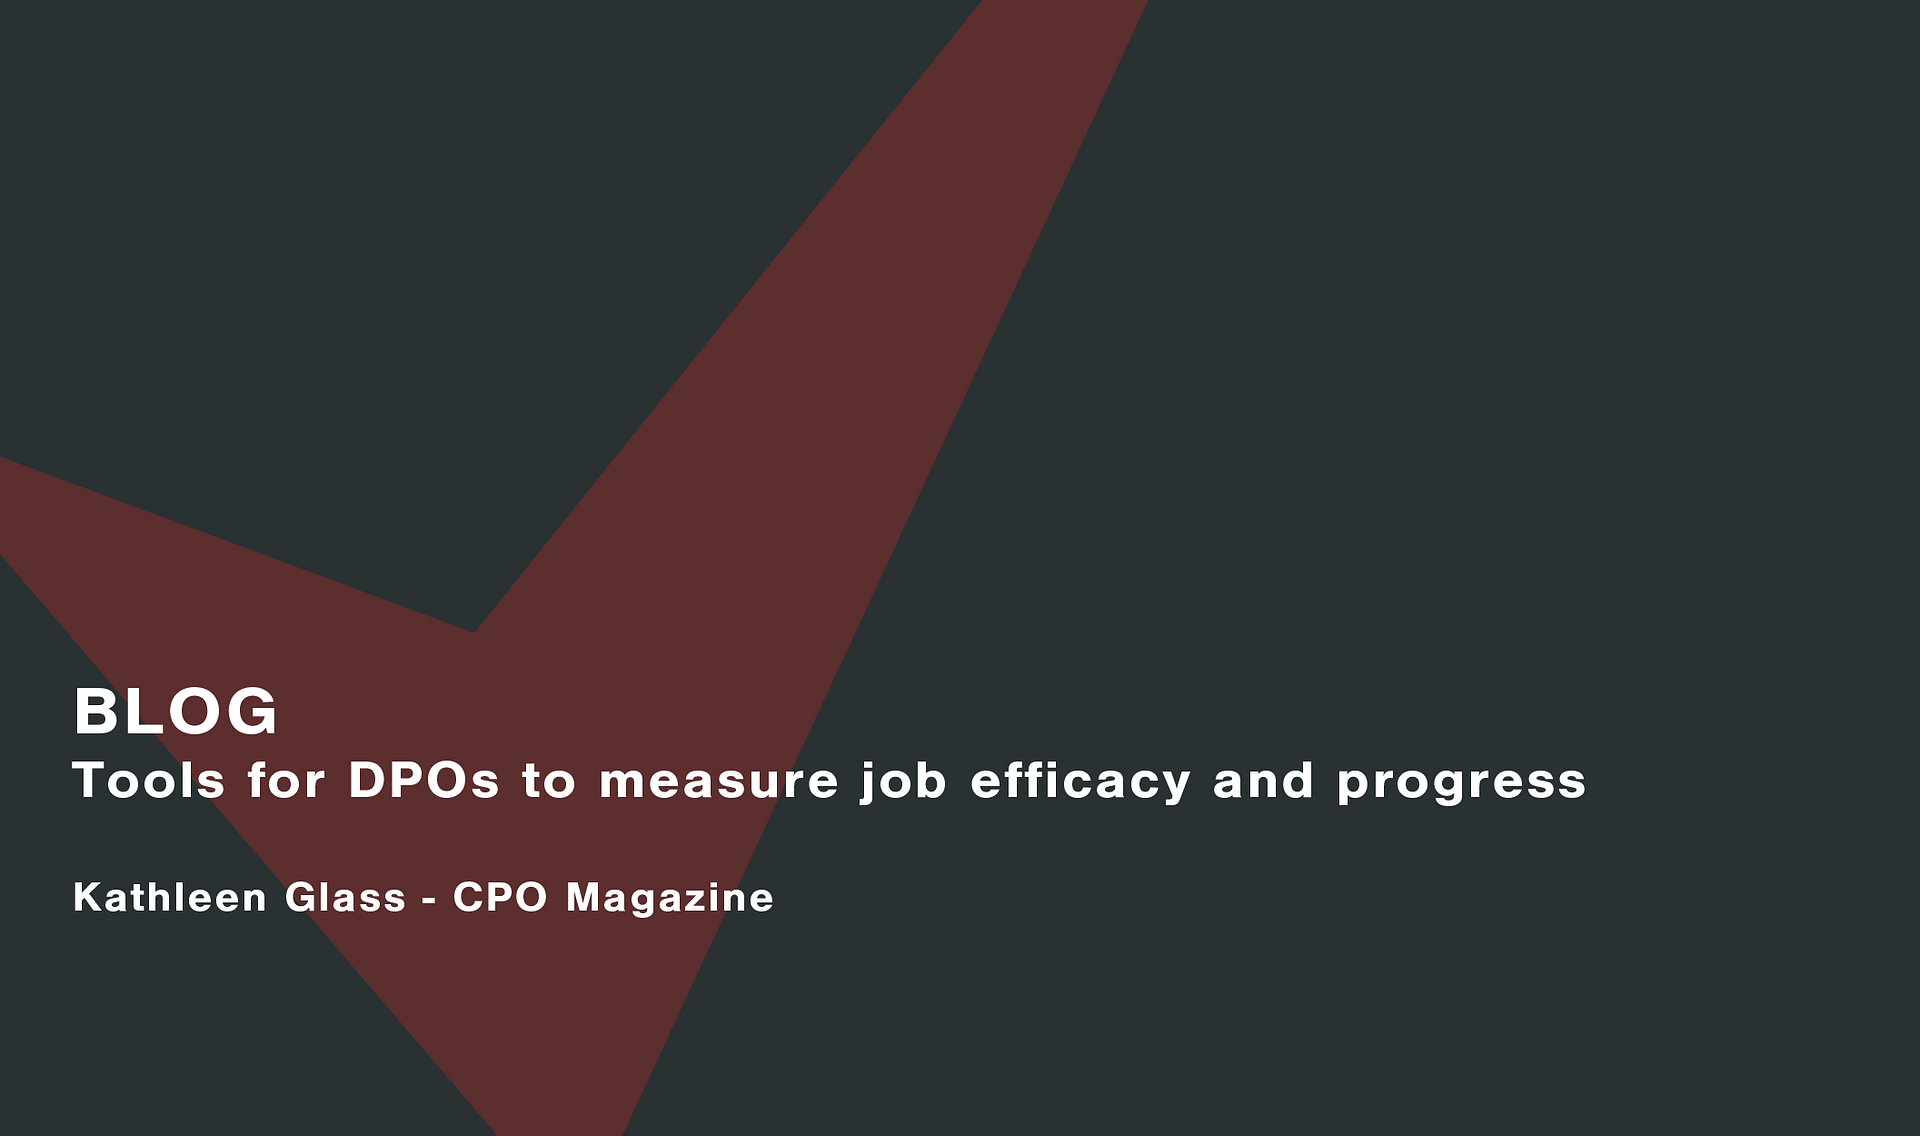 Tools for DPOs to measure job efficacy and progress Cassie personal information & consent management